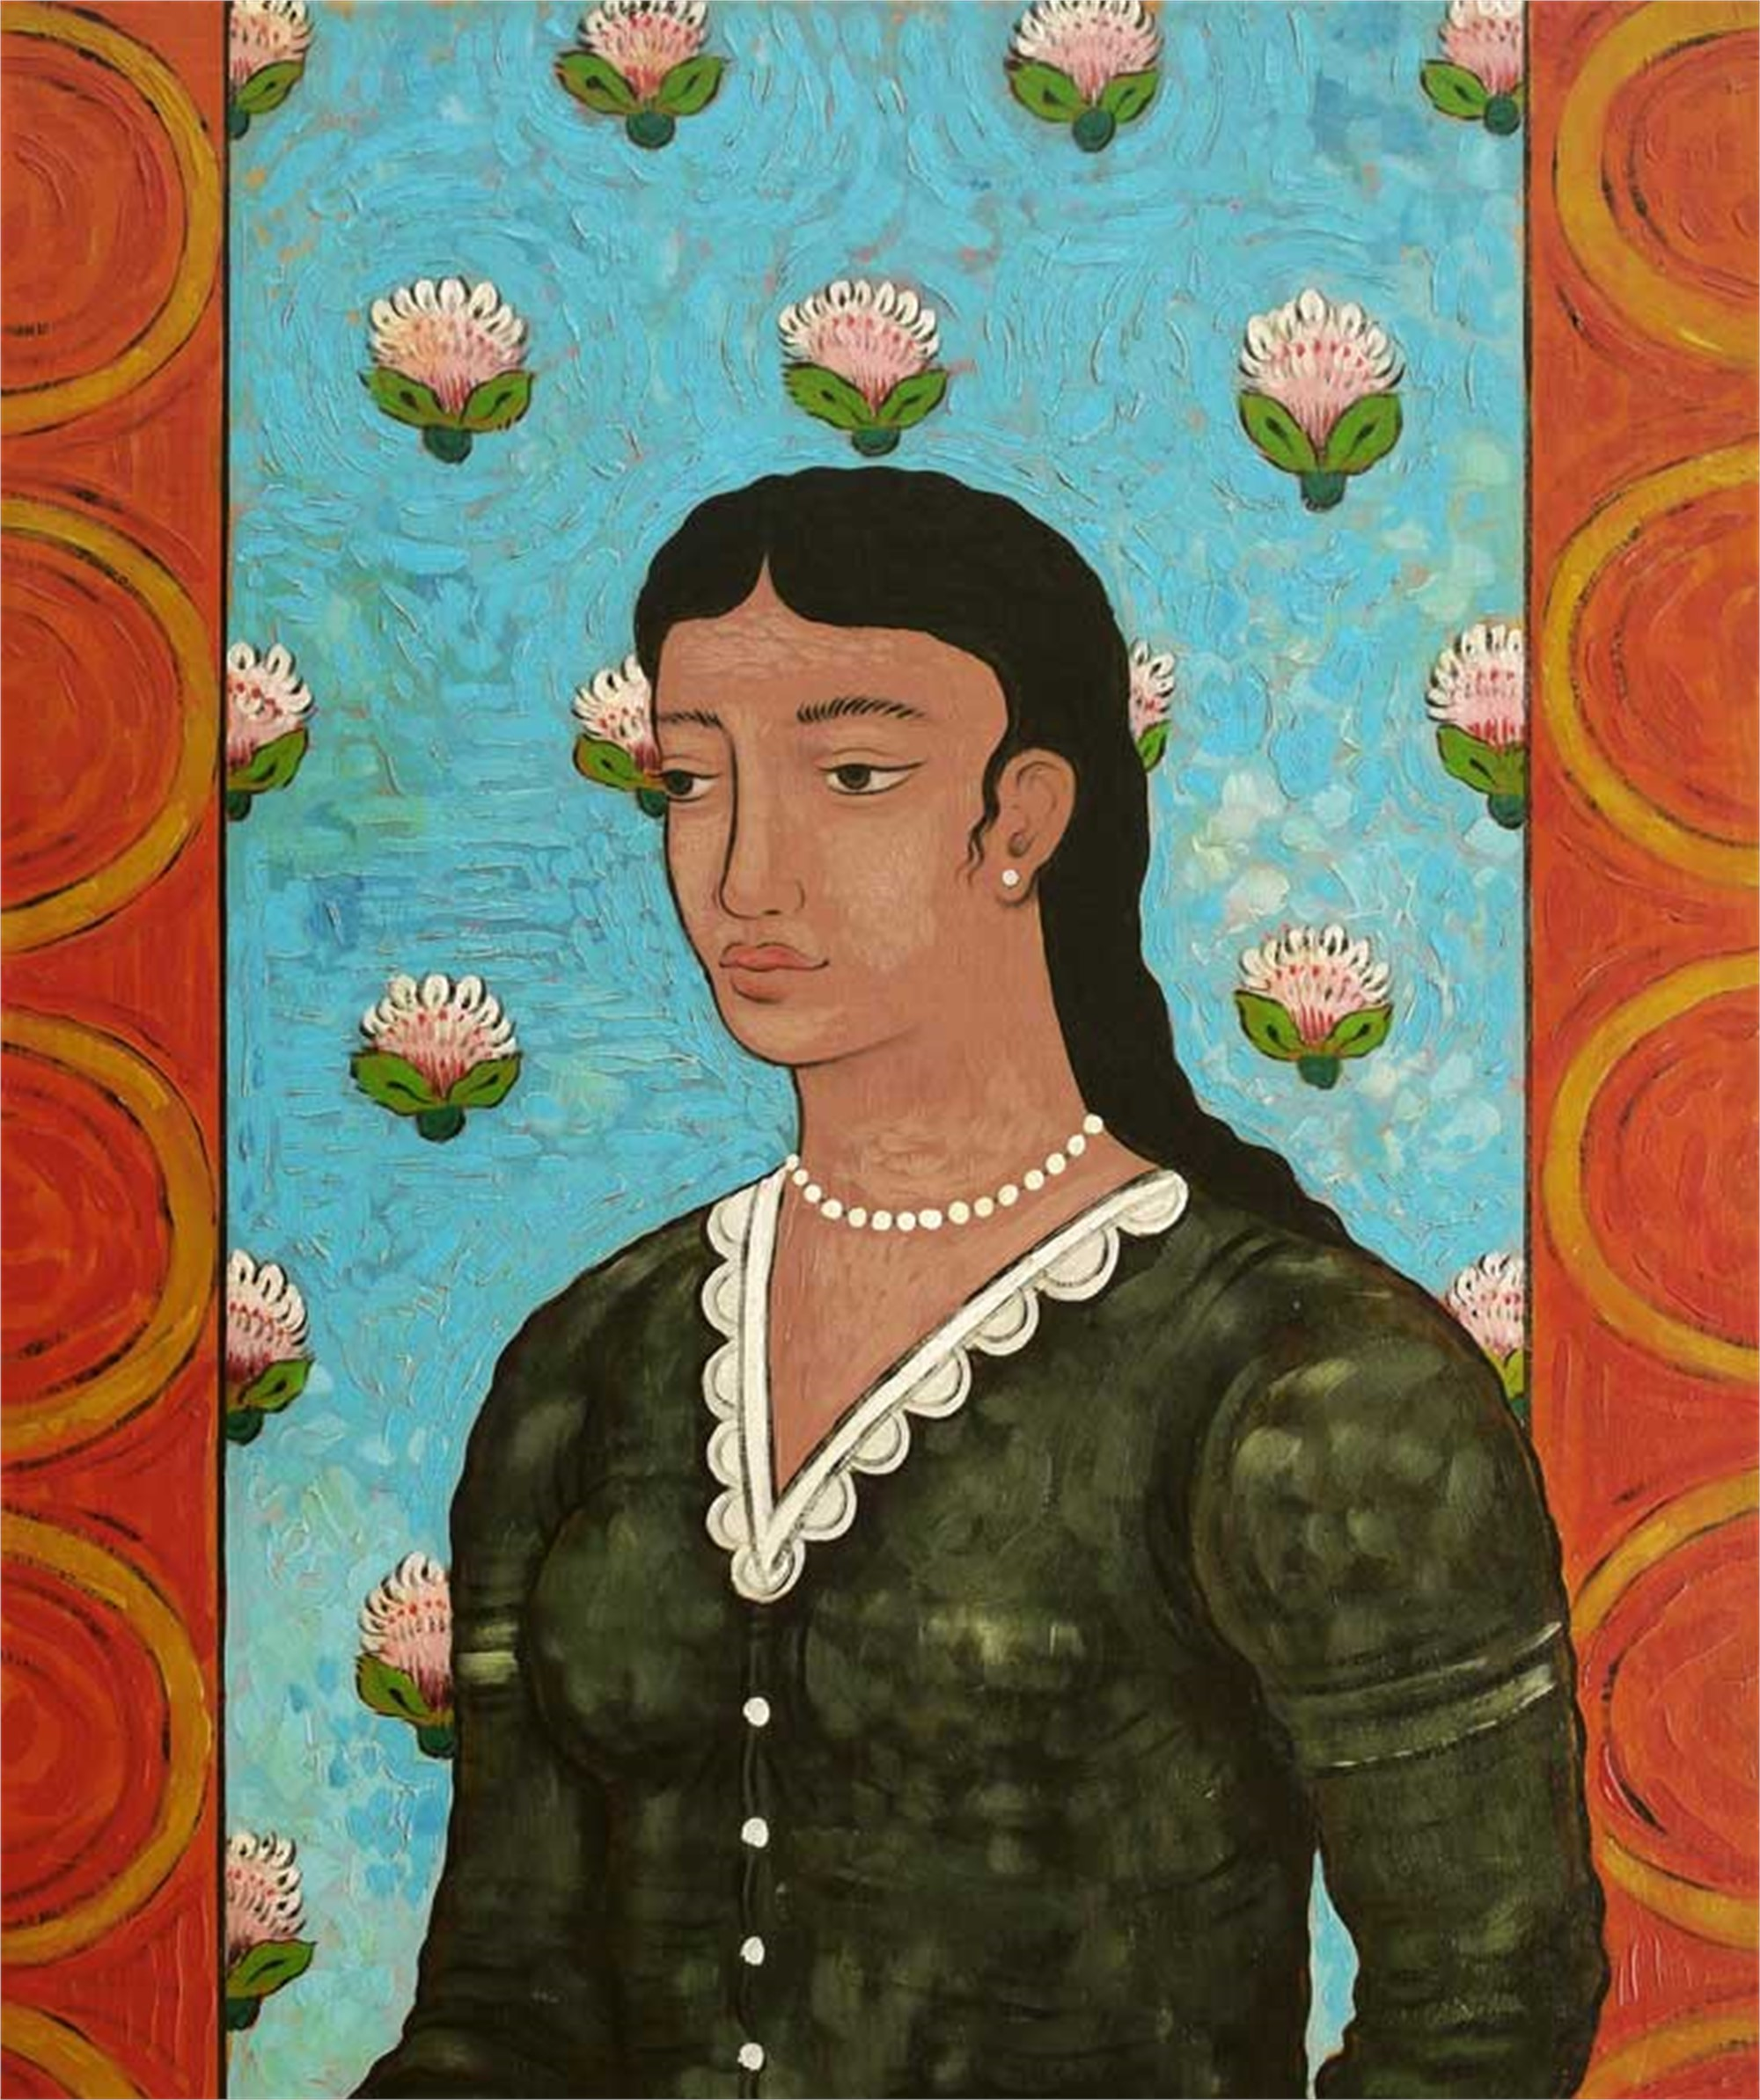 Woman in Black Dress by Mark Briscoe